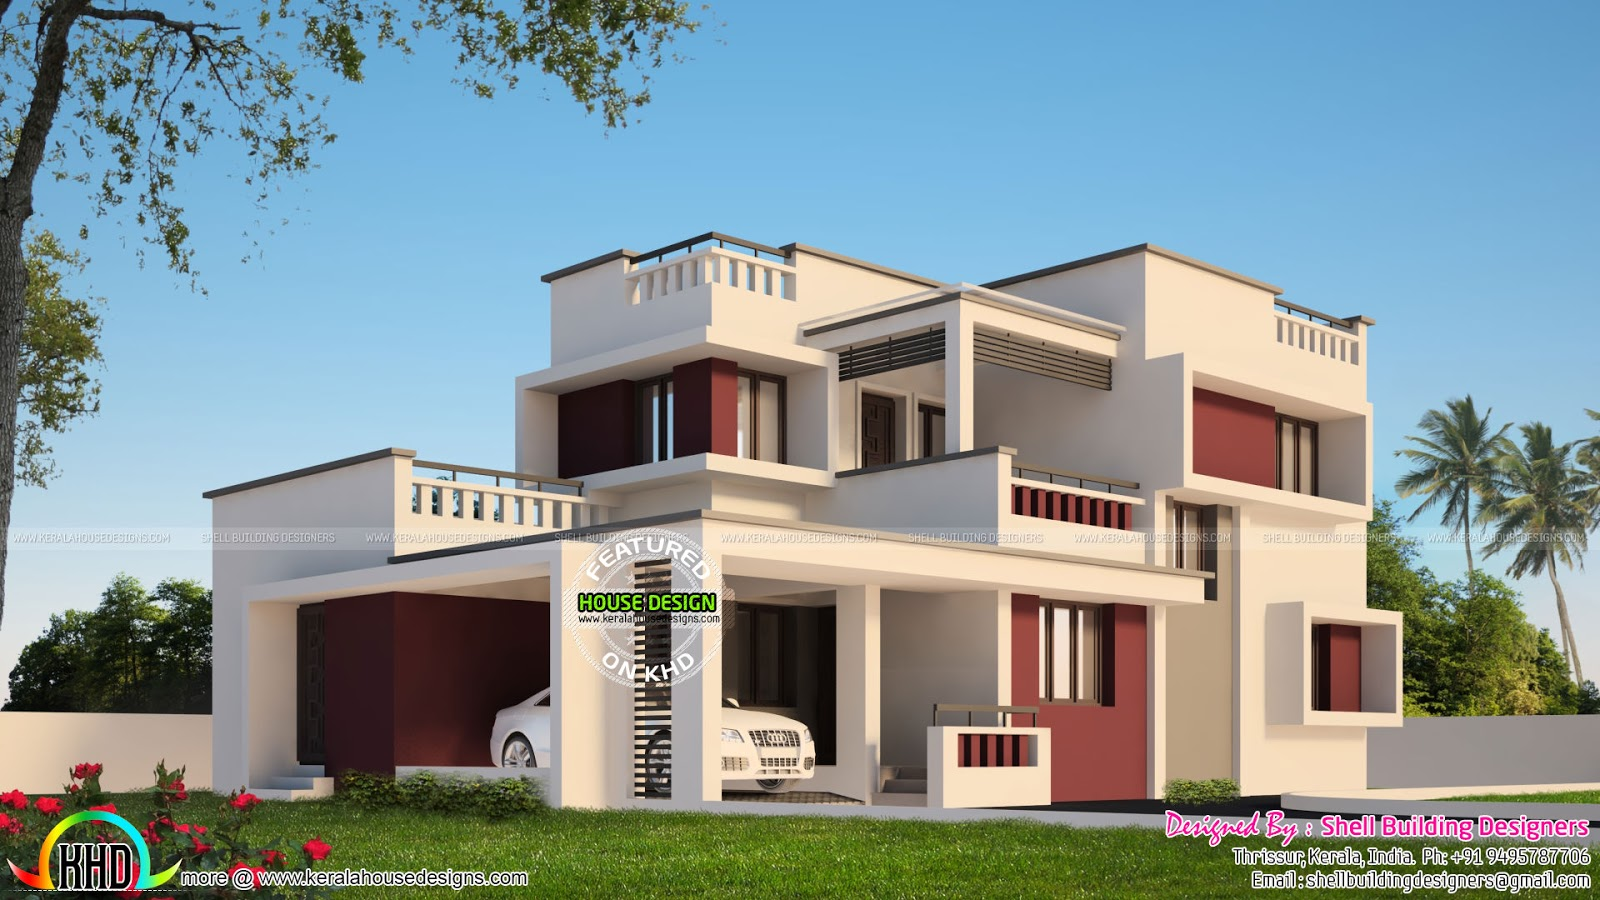 Box type modern home kerala home design and floor plans Types of modern houses